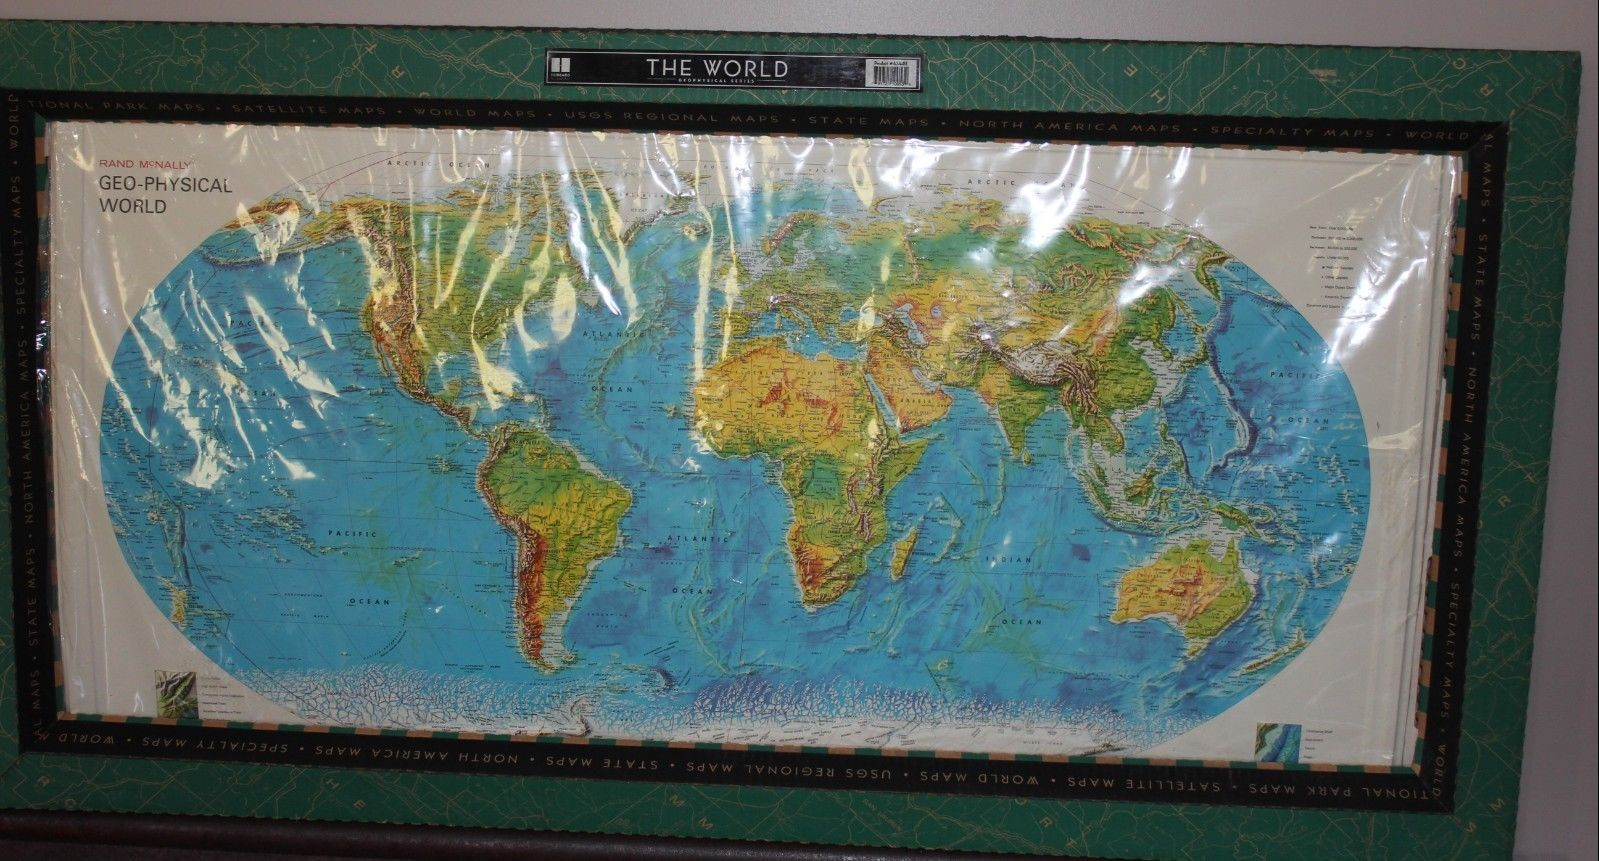 Raised Relief World Map.The World Map Geo Physical Raised Relief Ebay Friends Ebay Etsy